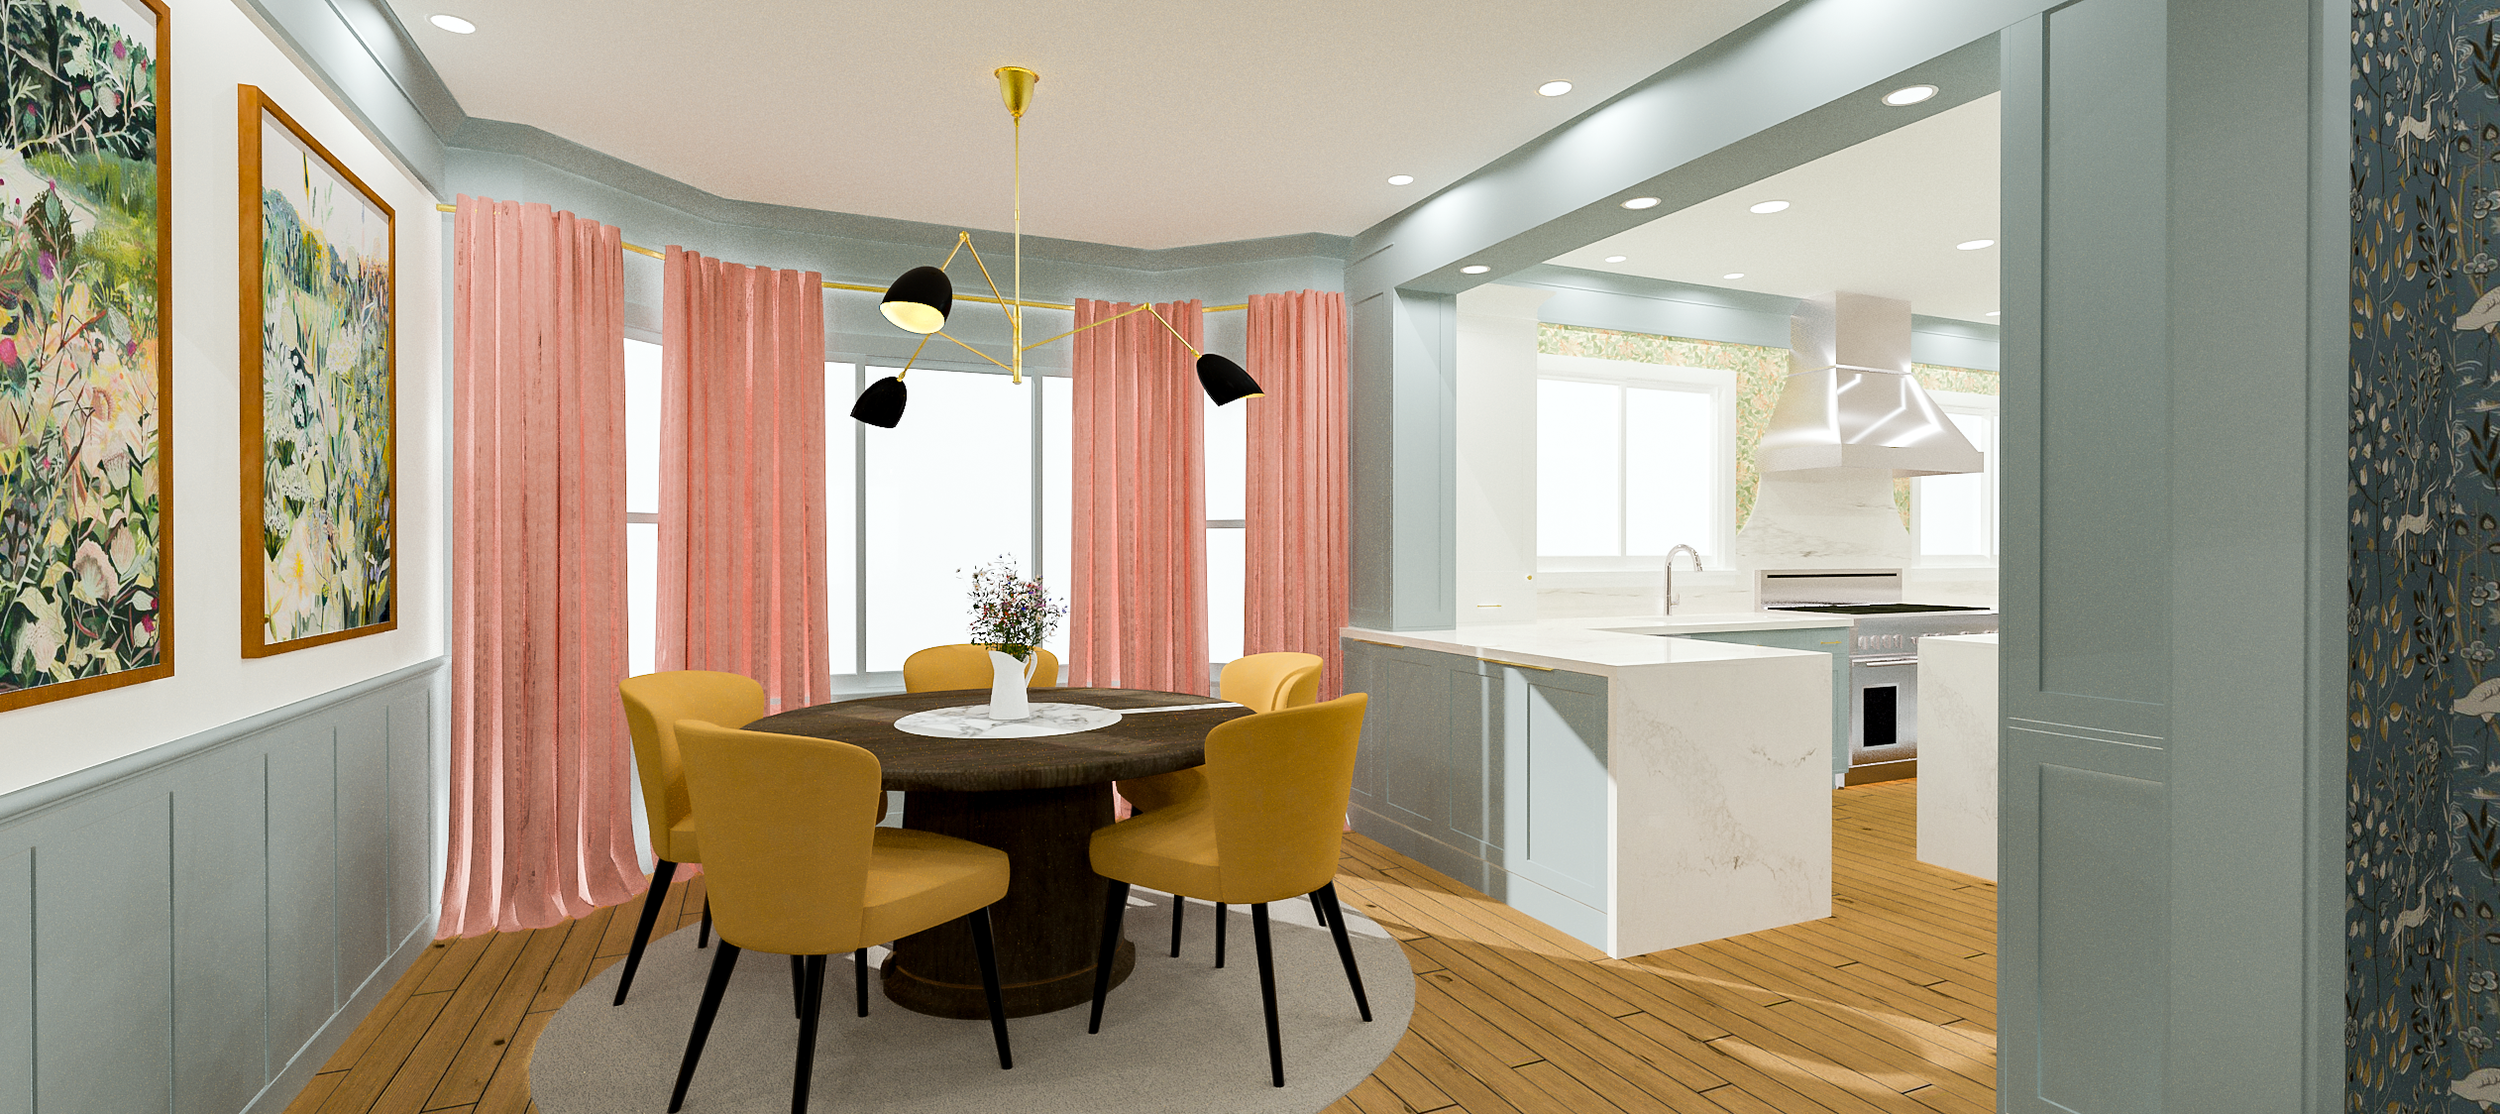 Dining Room Designed and Rendered by: Kelly Fridline Design, LLC